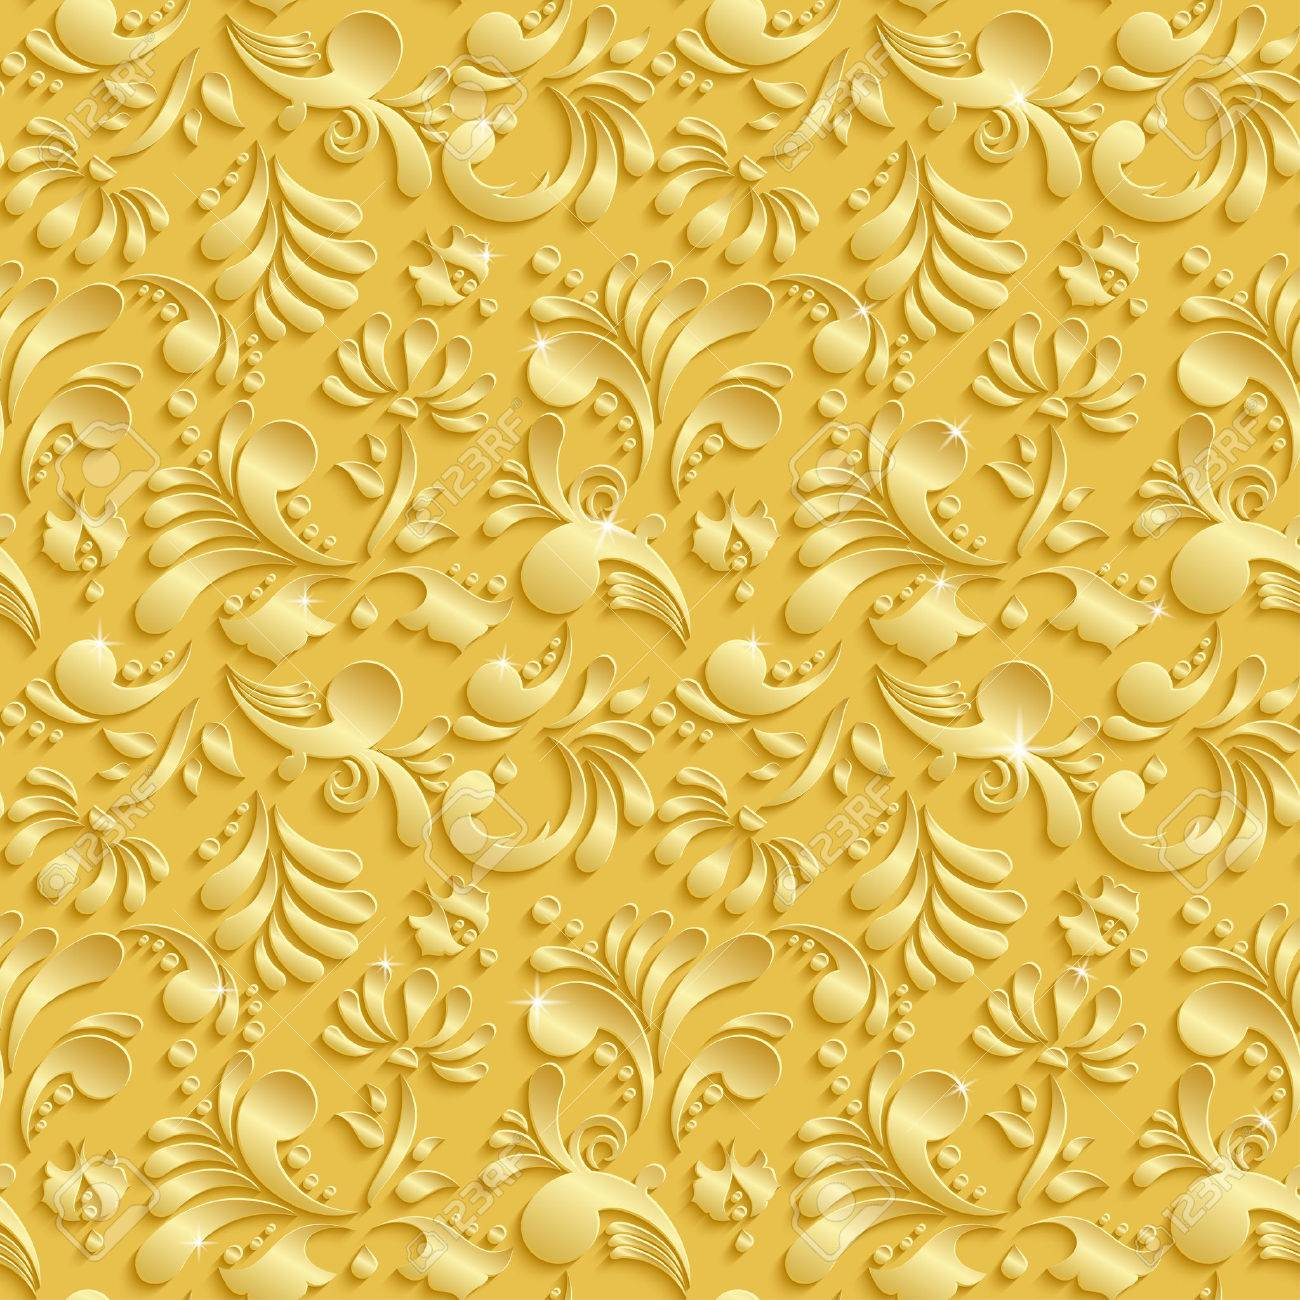 Abstract floral 3d golden background vector seamless pattern abstract floral 3d golden background vector seamless pattern trendy design template for christmas and stopboris Images